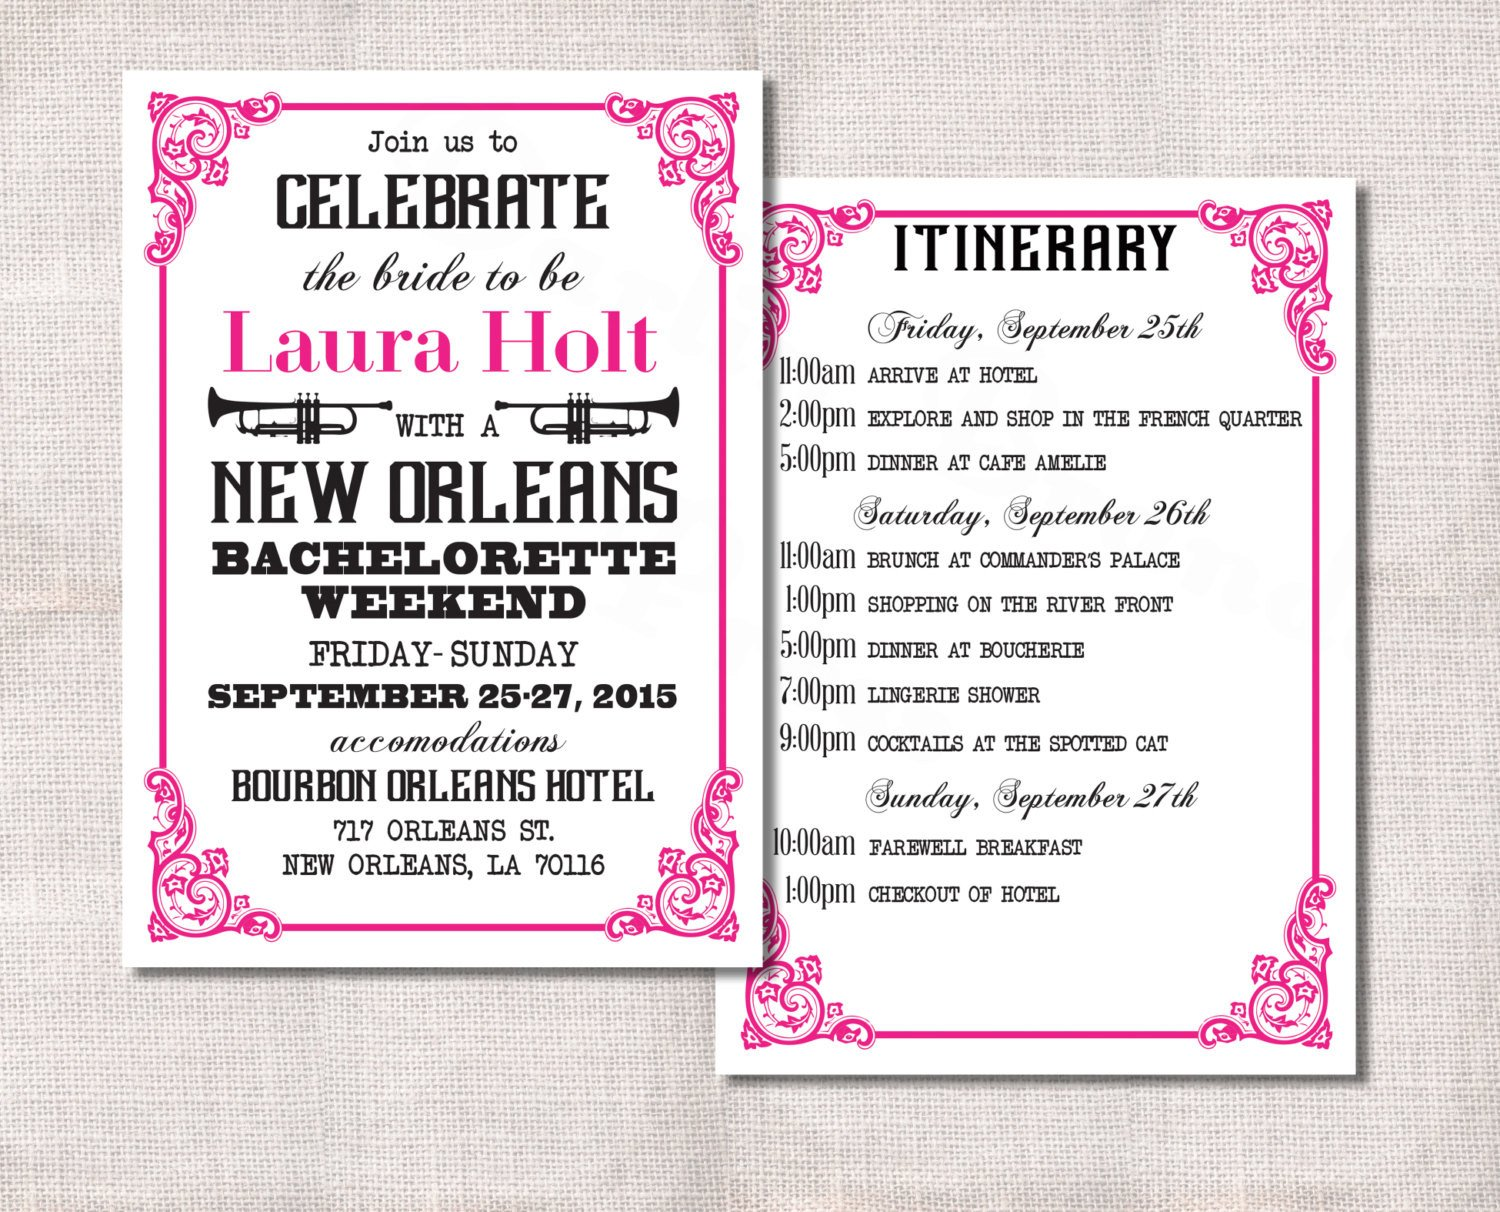 Bachelorette Party Itinerary Template Bachelorette Party Weekend Invitation and Itinerary Custom